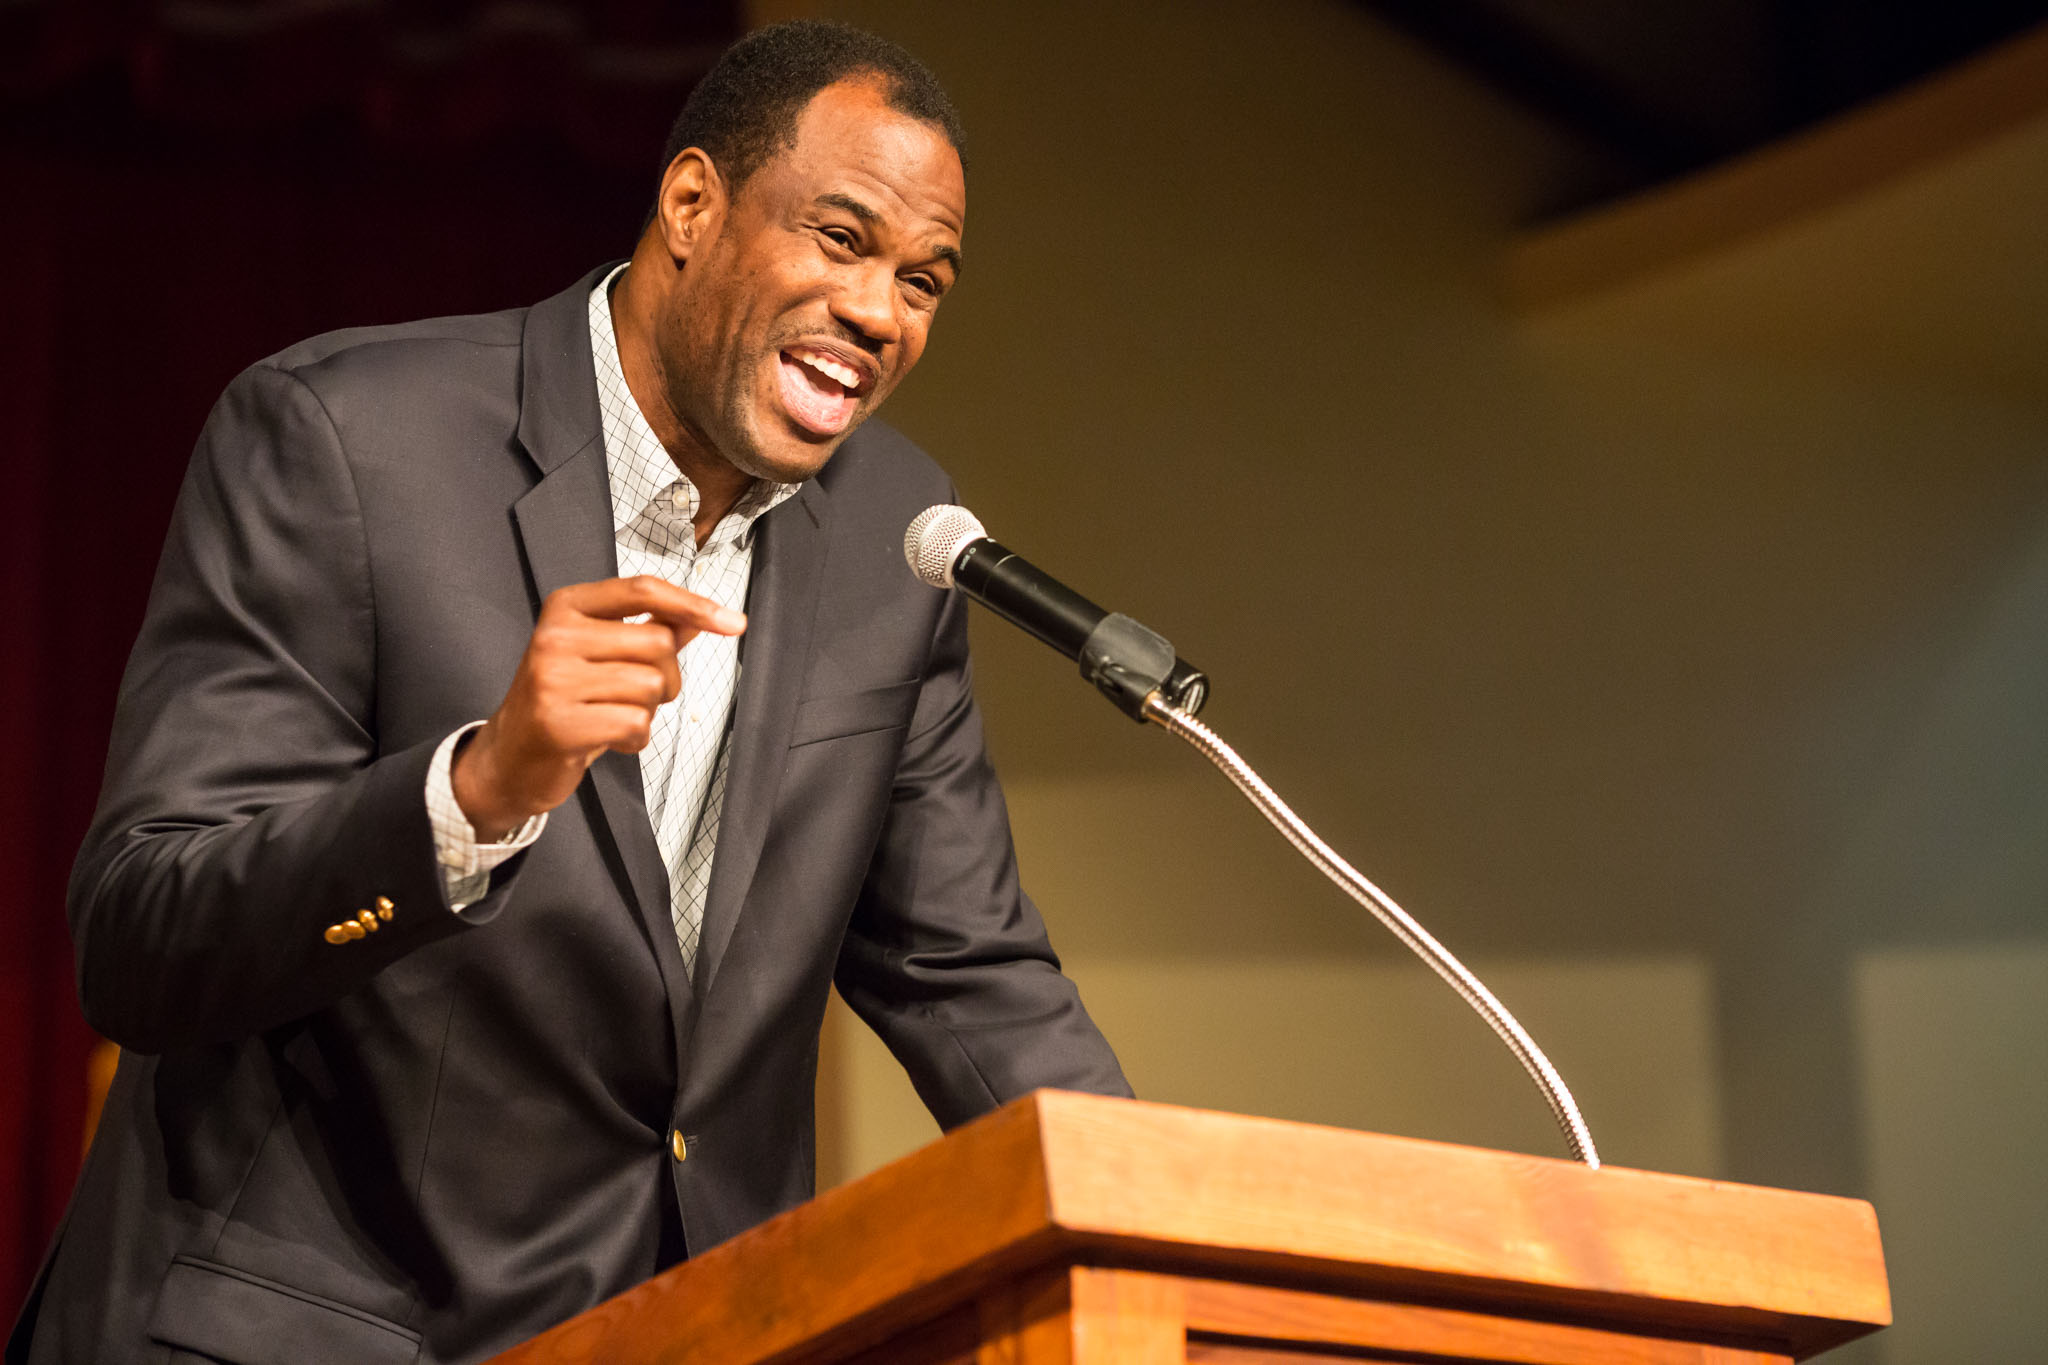 David Robinson, a former Spurs player and founder of the Carver Academy, speaks on the state of pubic education at the Pearl Stable. Photo by Michael Cirlos.